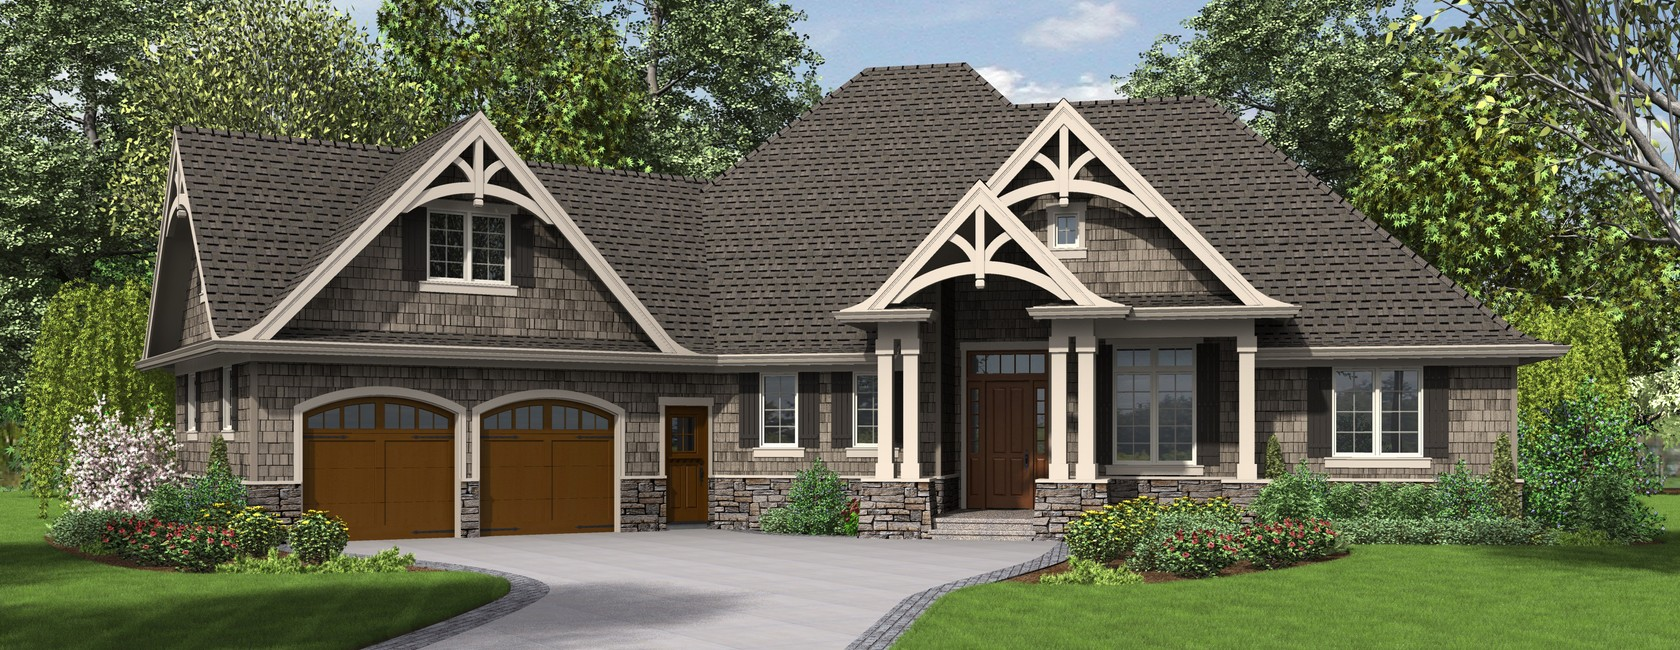 the ripley single story craftsman house plan with tons of